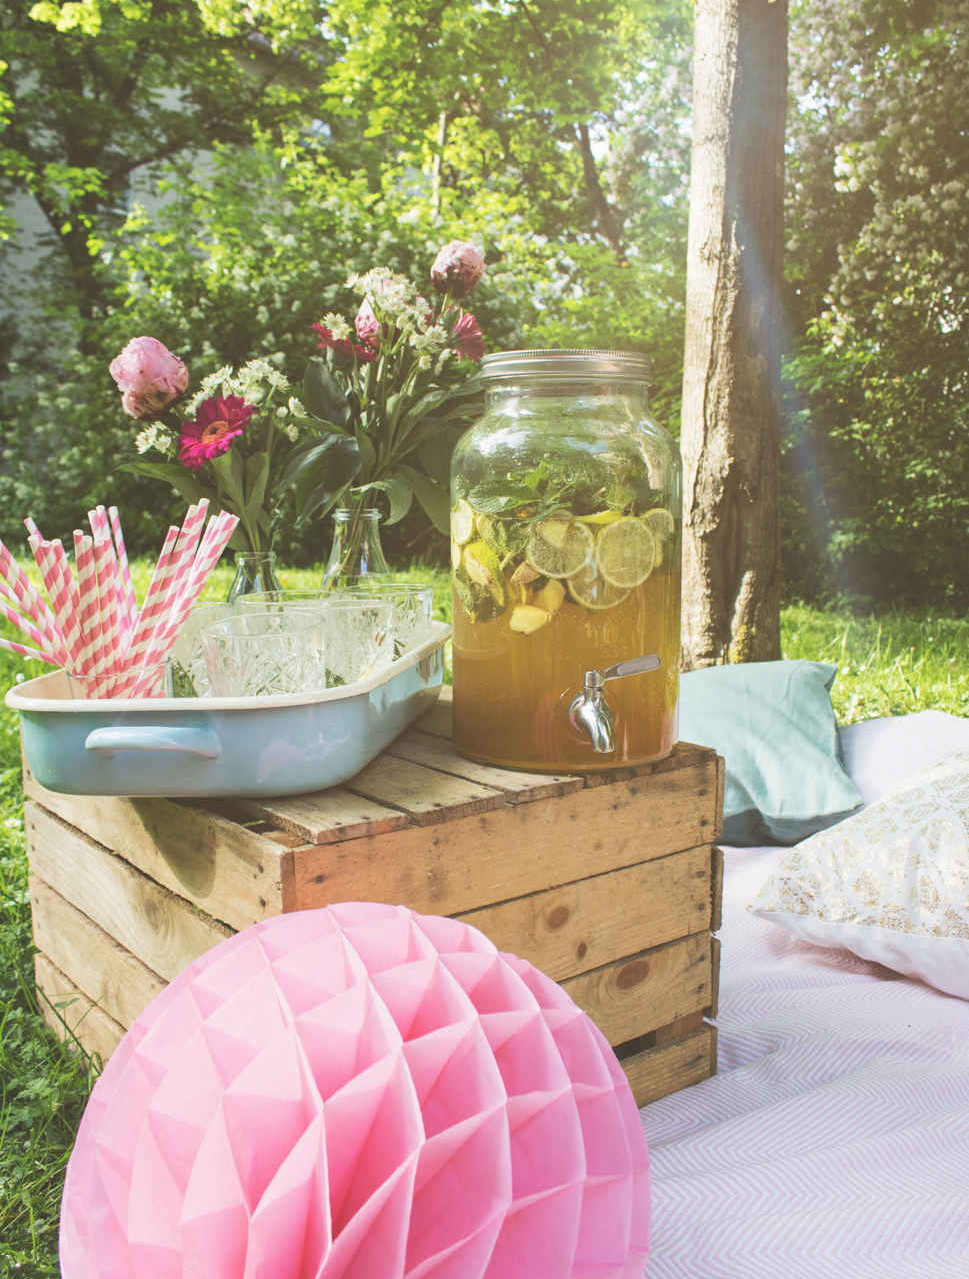 Eisparty, Sommerparty, Picknick, DIY, Partyhacks, Partyidee, Bridal Shower, Baby Party, Geburtstagsparty, Picknickparty, Garten Party